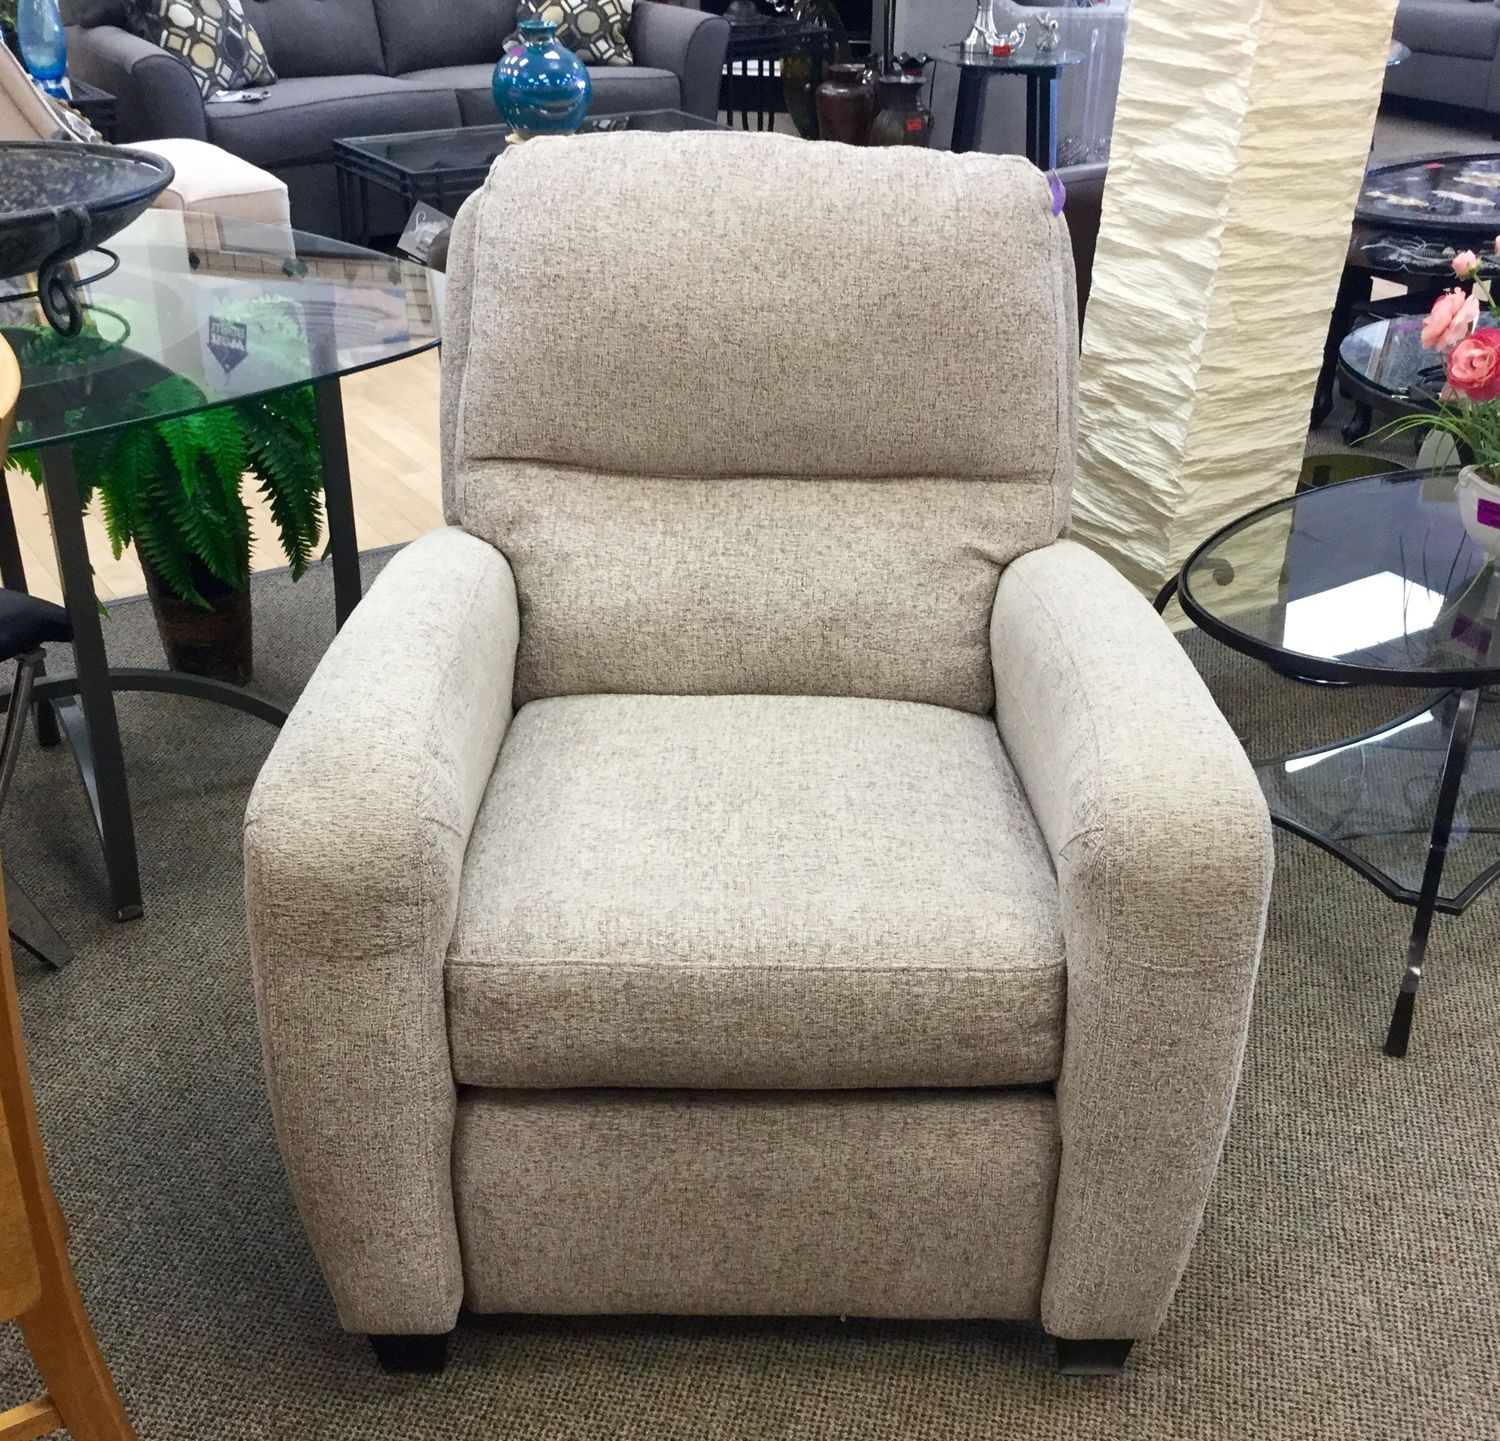 Find Name Brand Furniture For A Fraction Of The Price At New Uses Lane Recliner In Great Condition And Nice Neutral Color 65